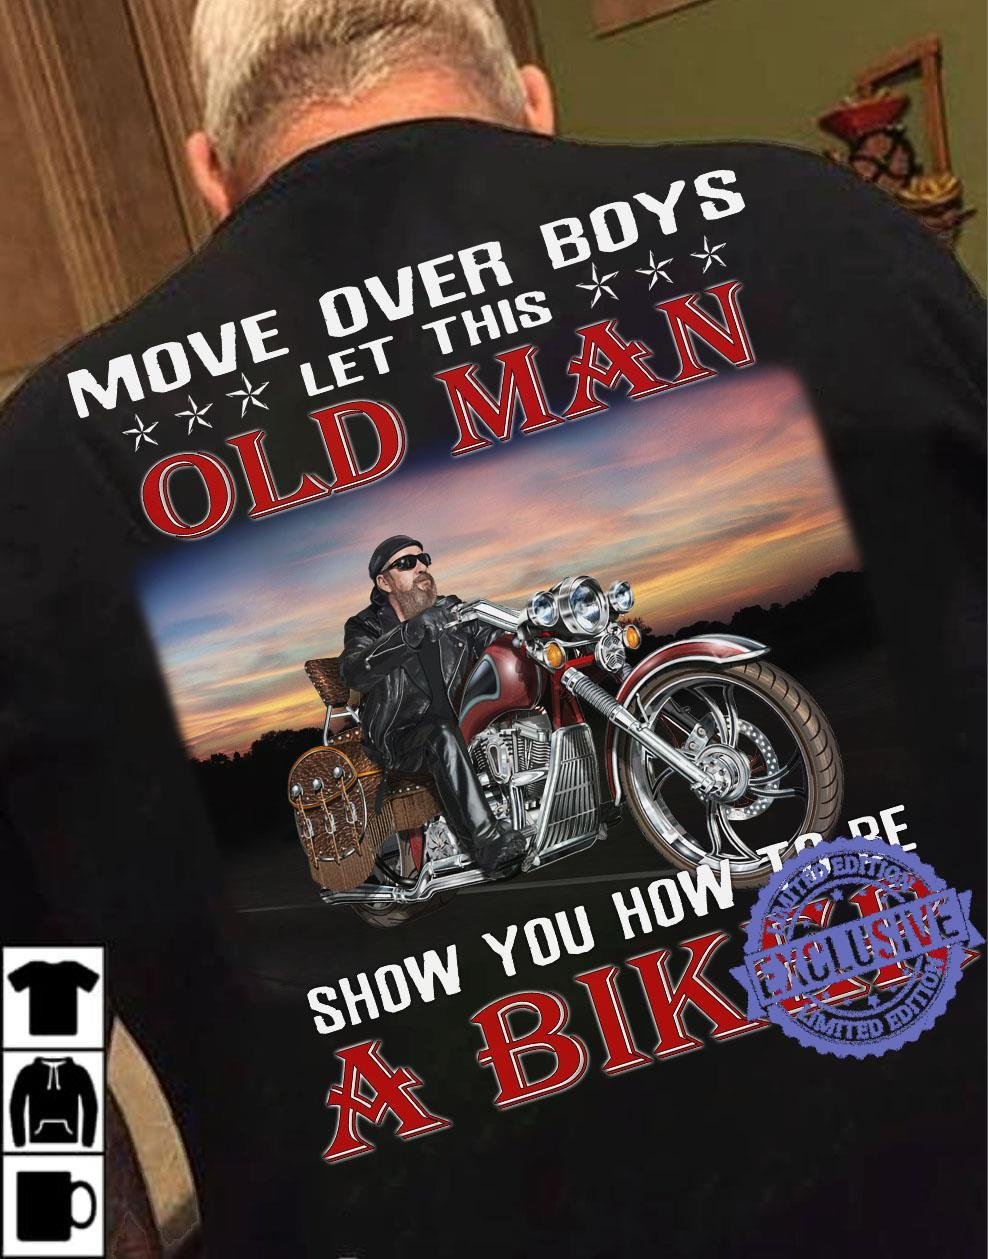 Move over boys old man show you how to be a biker shirt